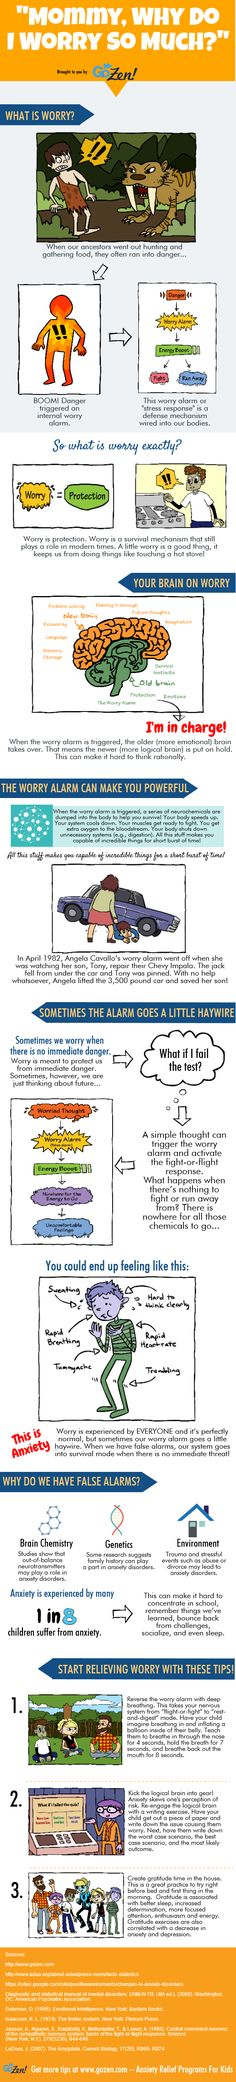 """Mommy, why do I worry so much?"" At some point, children with anxiety want to understand why they are suffering from persistent worry. Try walking your child through this infographic. Kids love to learn that worry actually has a very specific..."